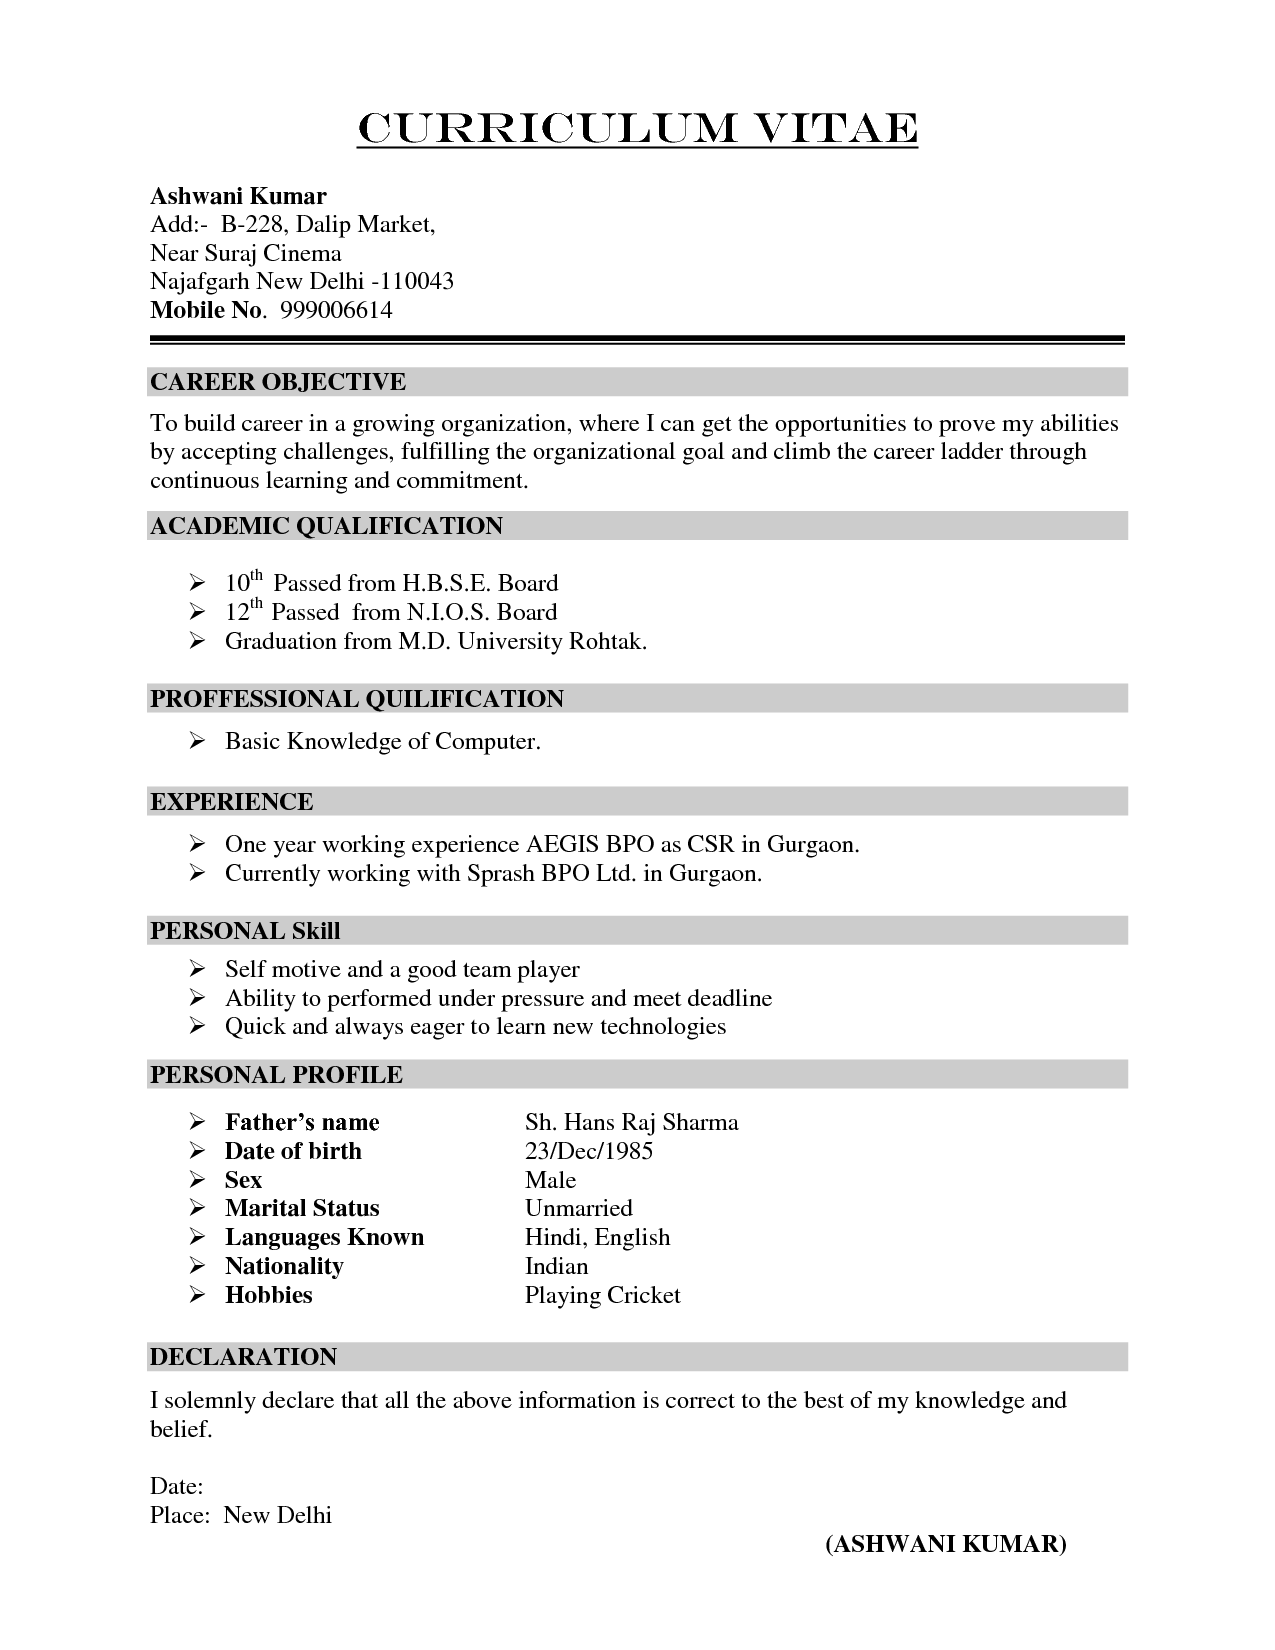 Curriculum vitae and resume format